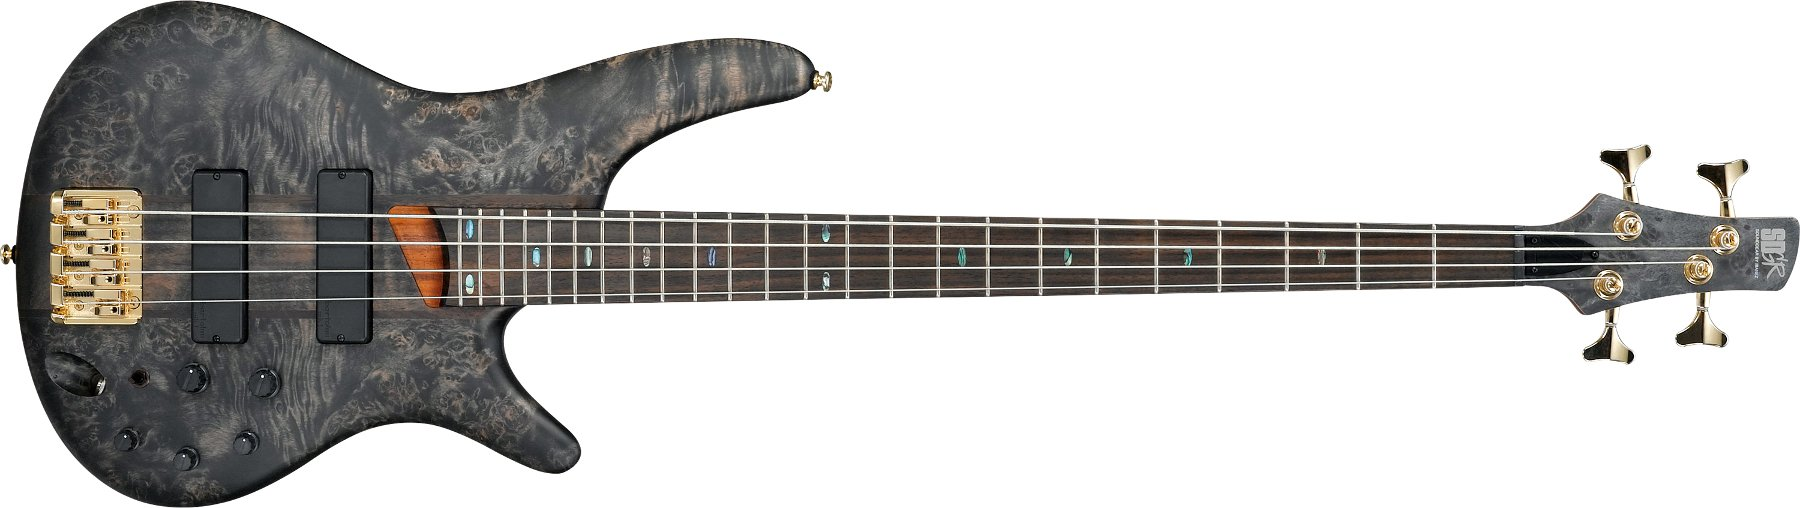 4-String Bass Guitar, 24-Fret, Rosewood Fretboard with Abalone Oval Inlay